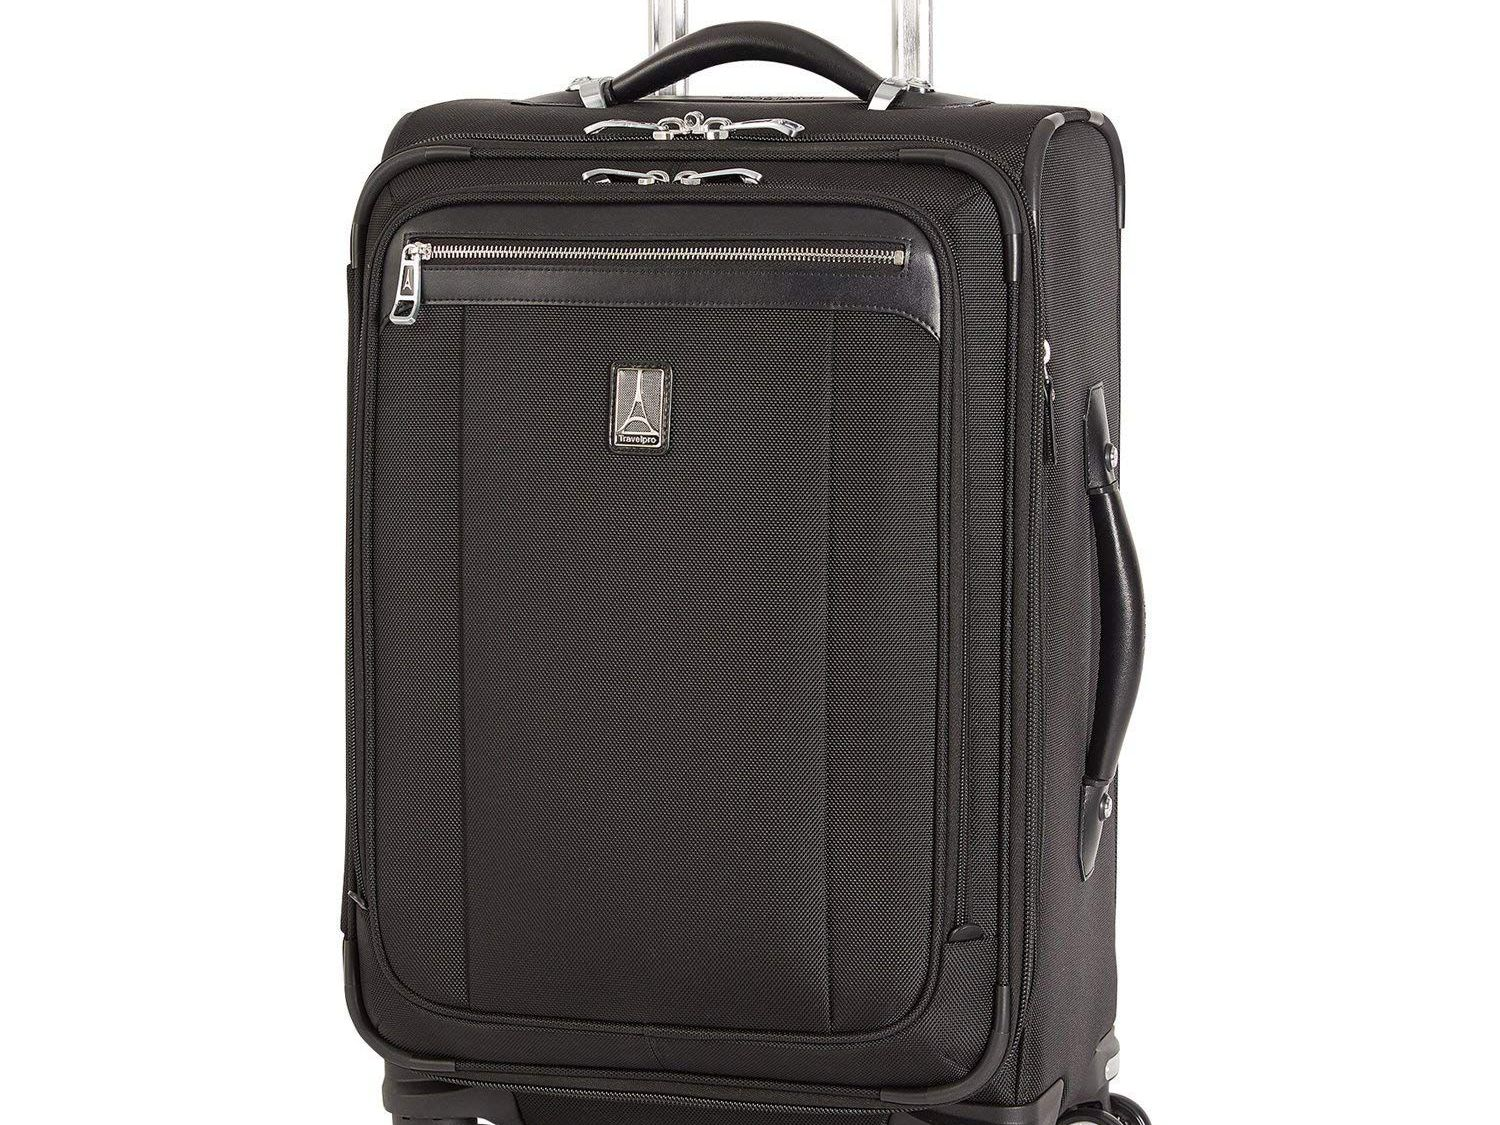 ca1f28b2 The 8 Best Carry-On Business Luggage Pieces of 2019